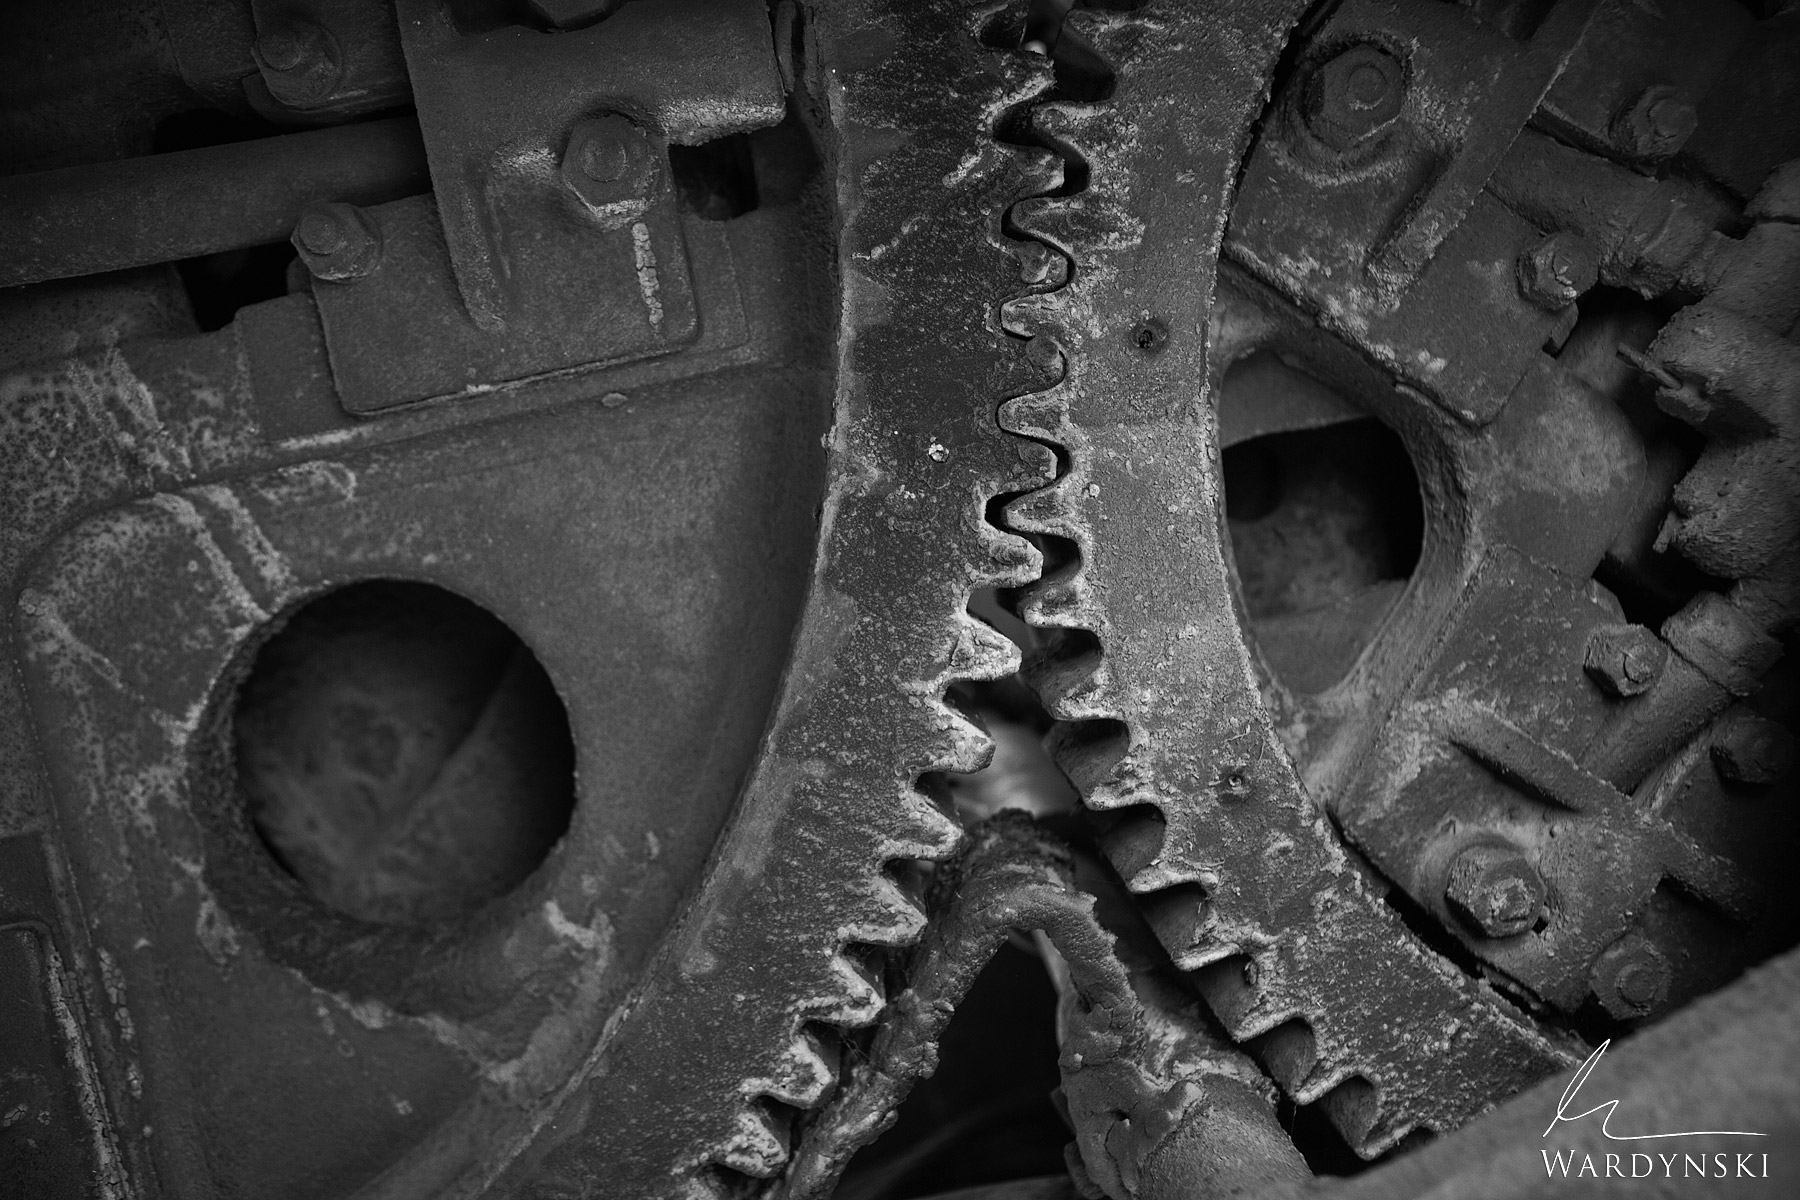 Black And White Fine Art Print | Limited Edition of 25  The gears of a steam engine sit locked in place. How many miles did these...